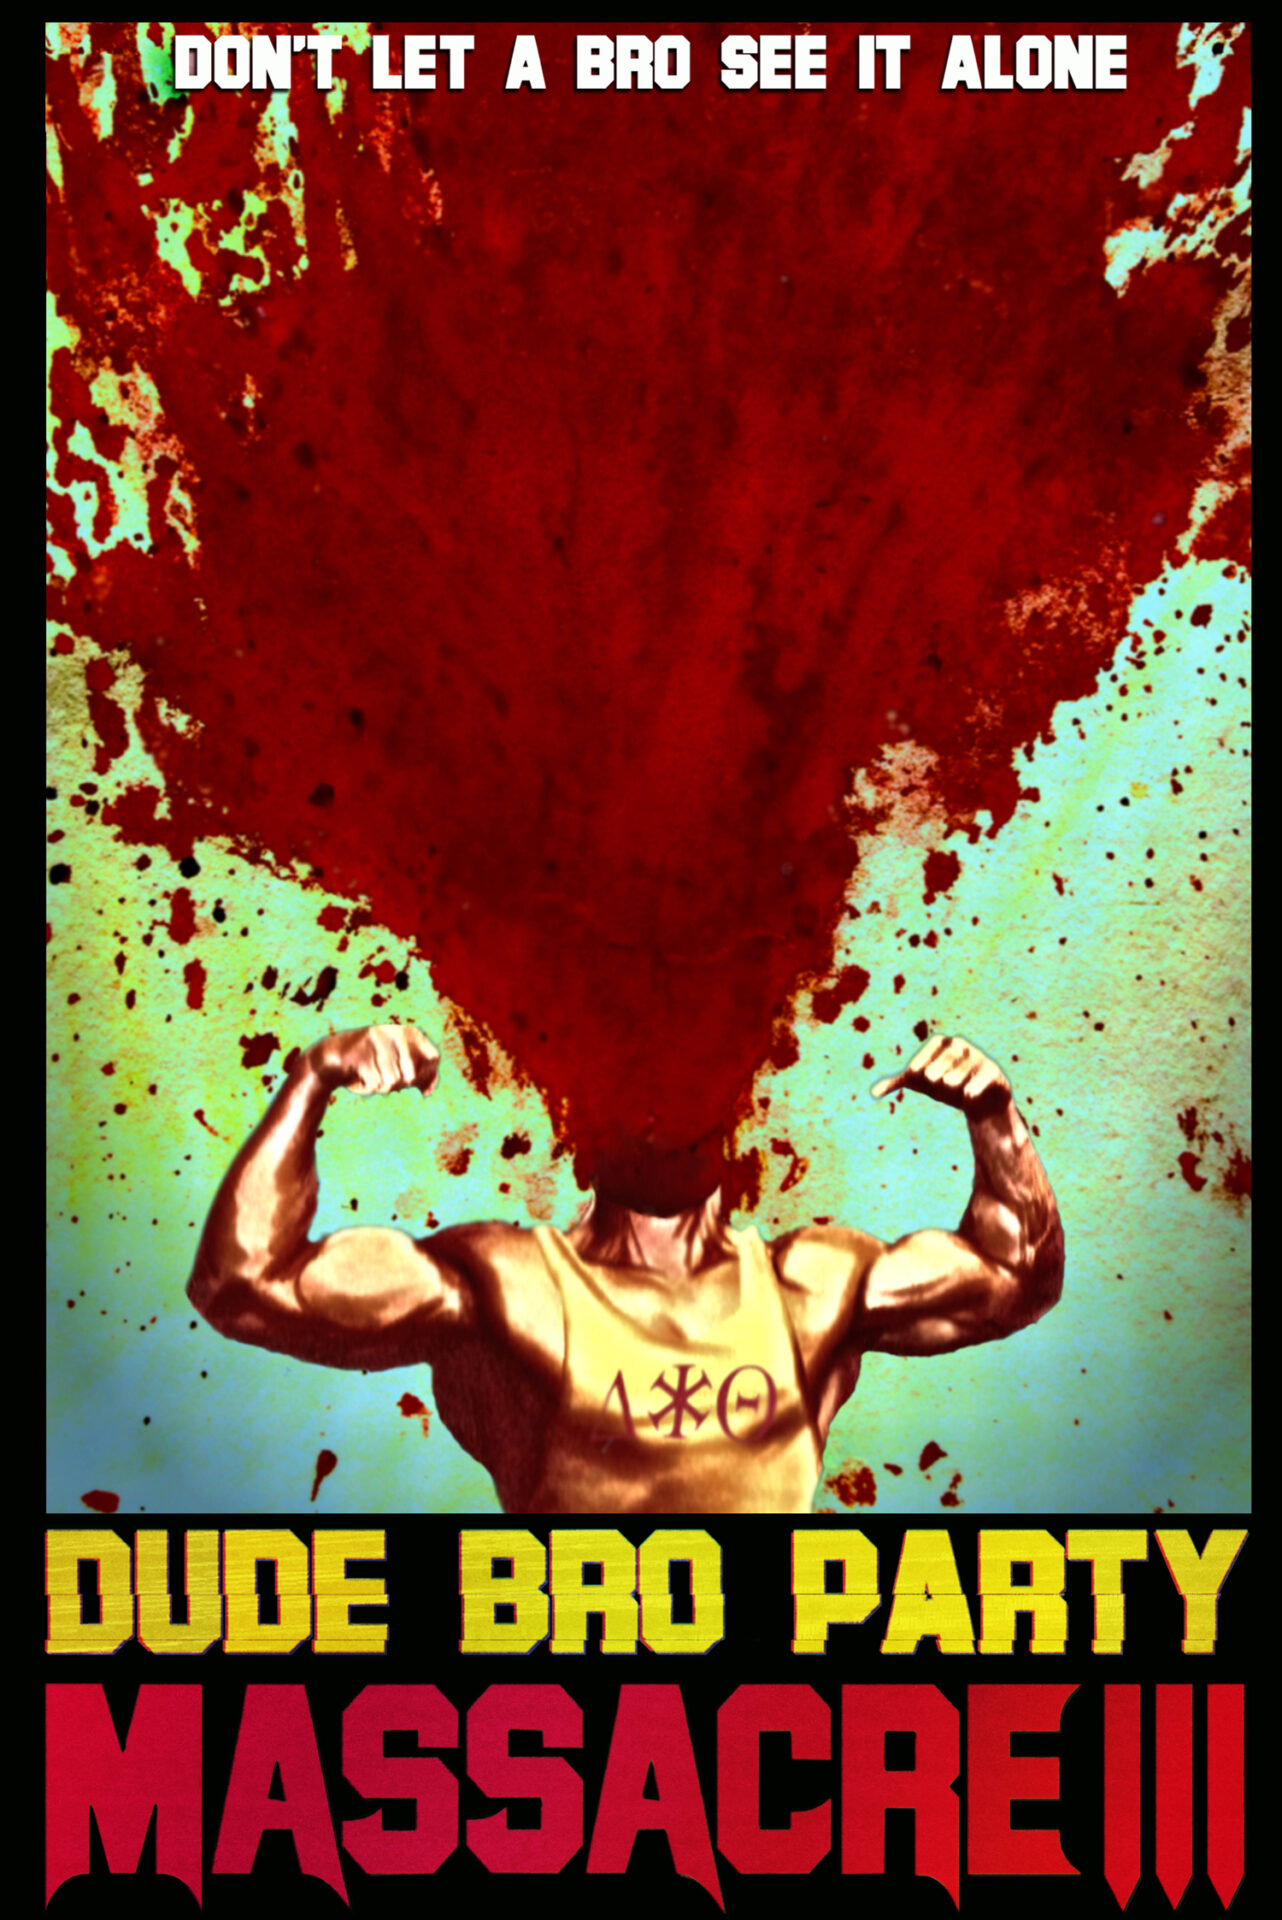 'Dude Bro Party Massacre III'